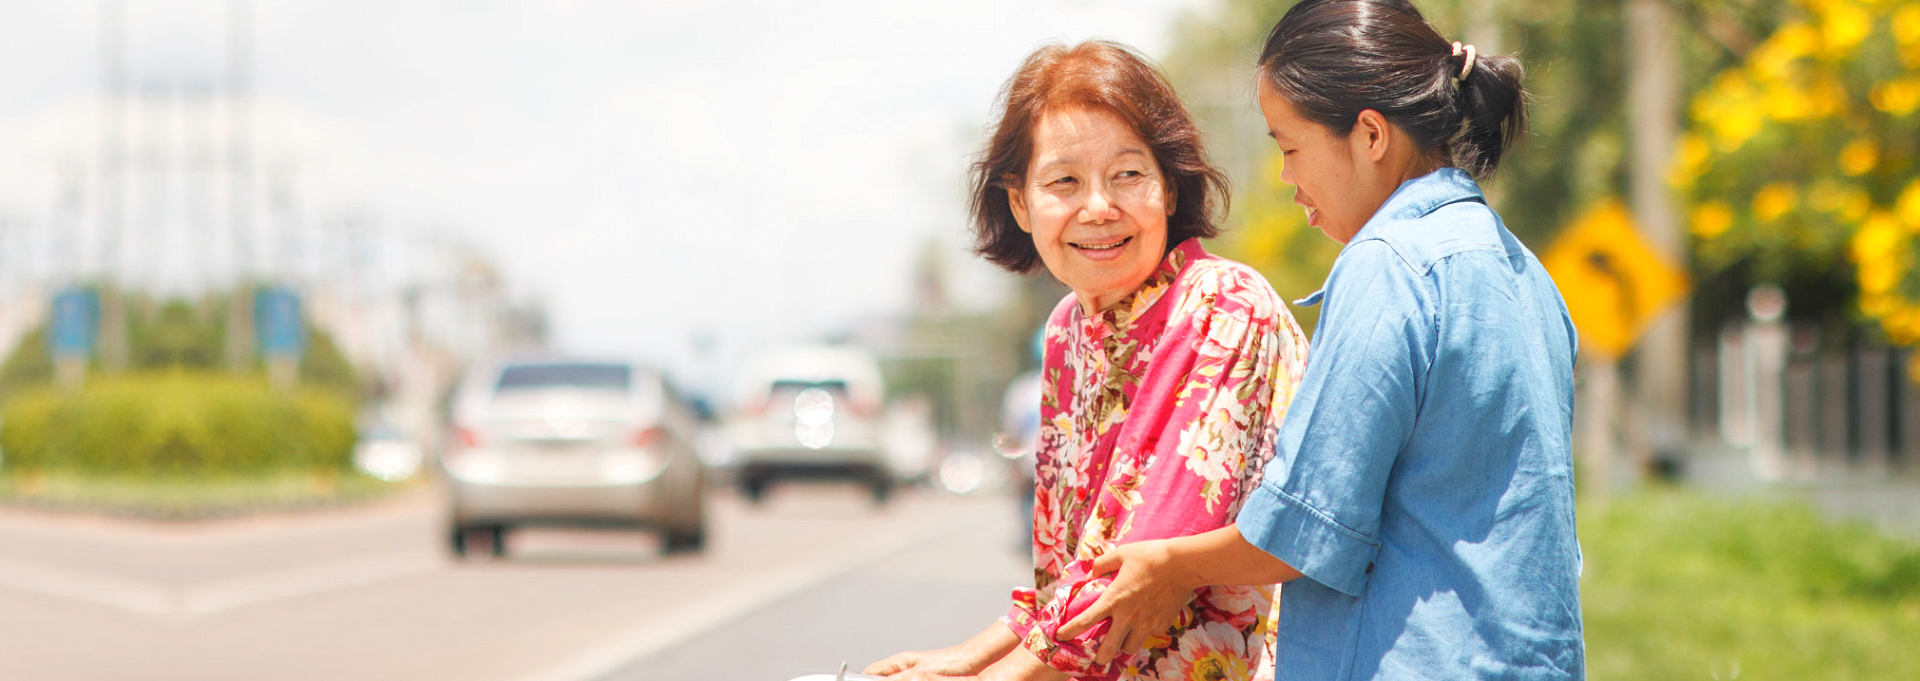 young lady assisting elderly woman in crossing the street